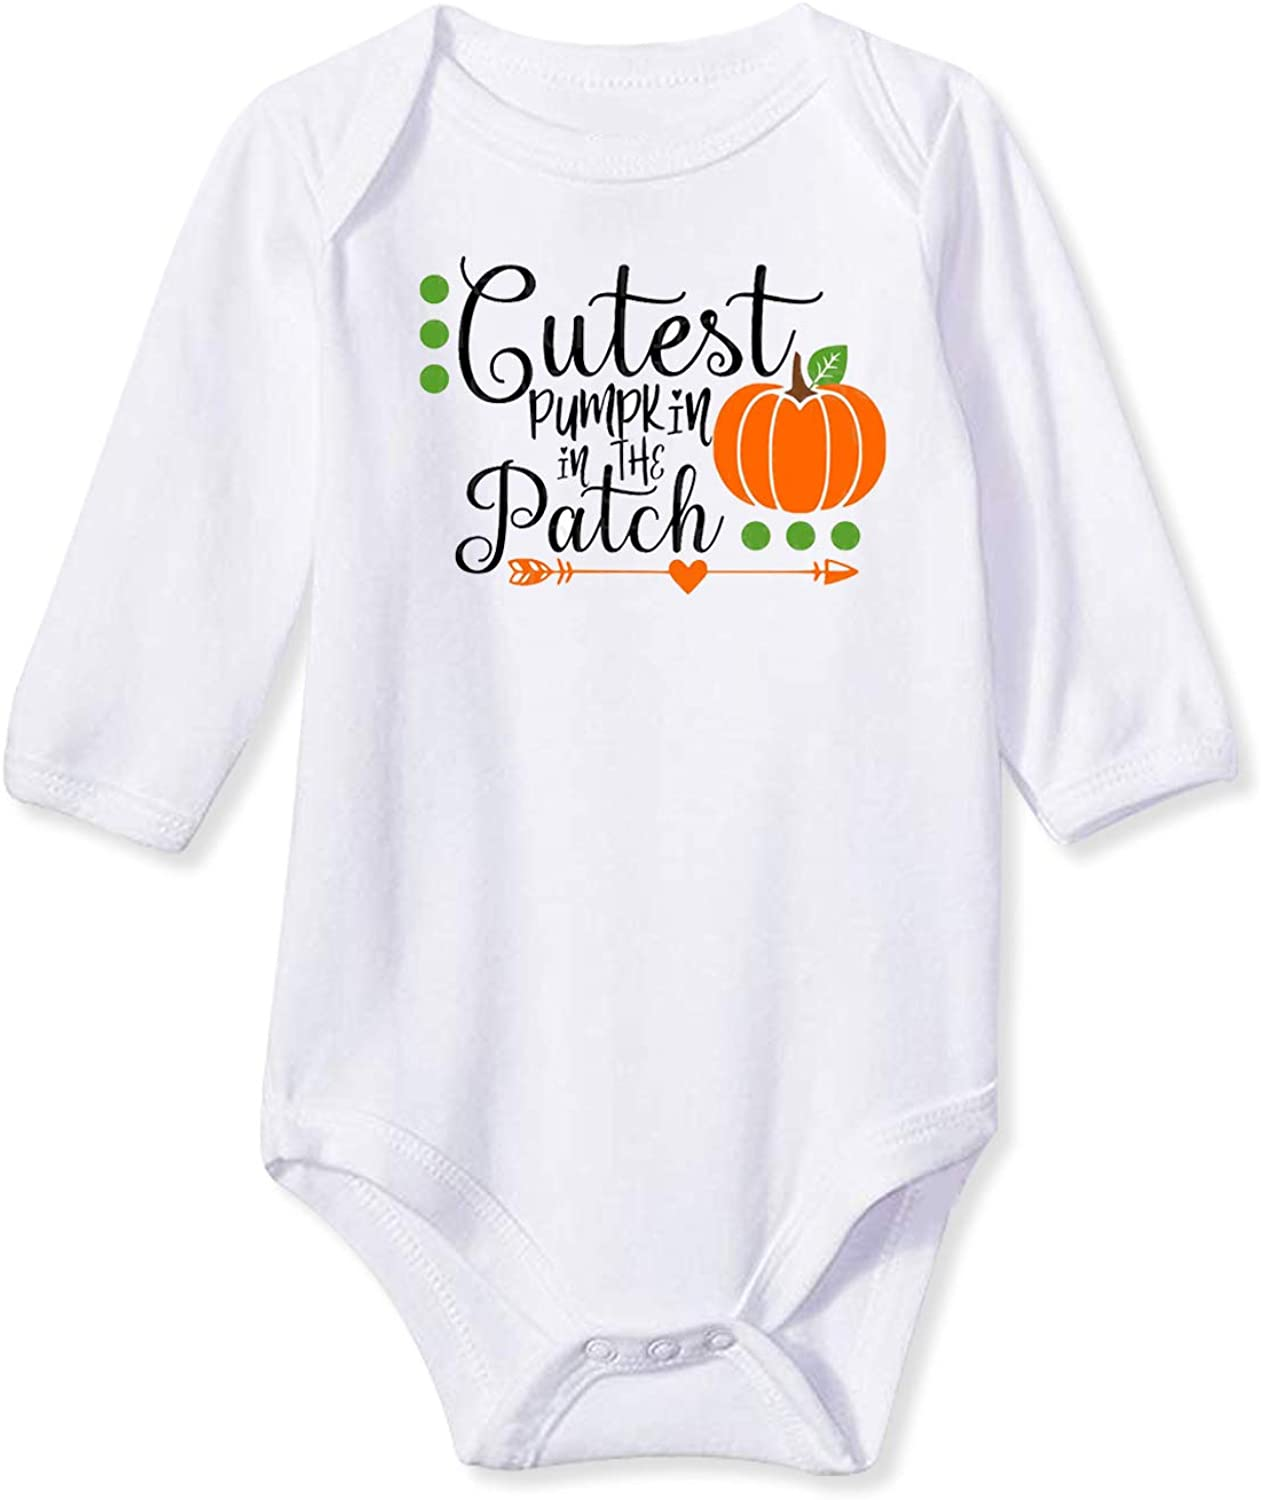 Loveternal Neutral Store Baby Girls Free Shipping New Boys Cute Saying Romper Cotton Aun